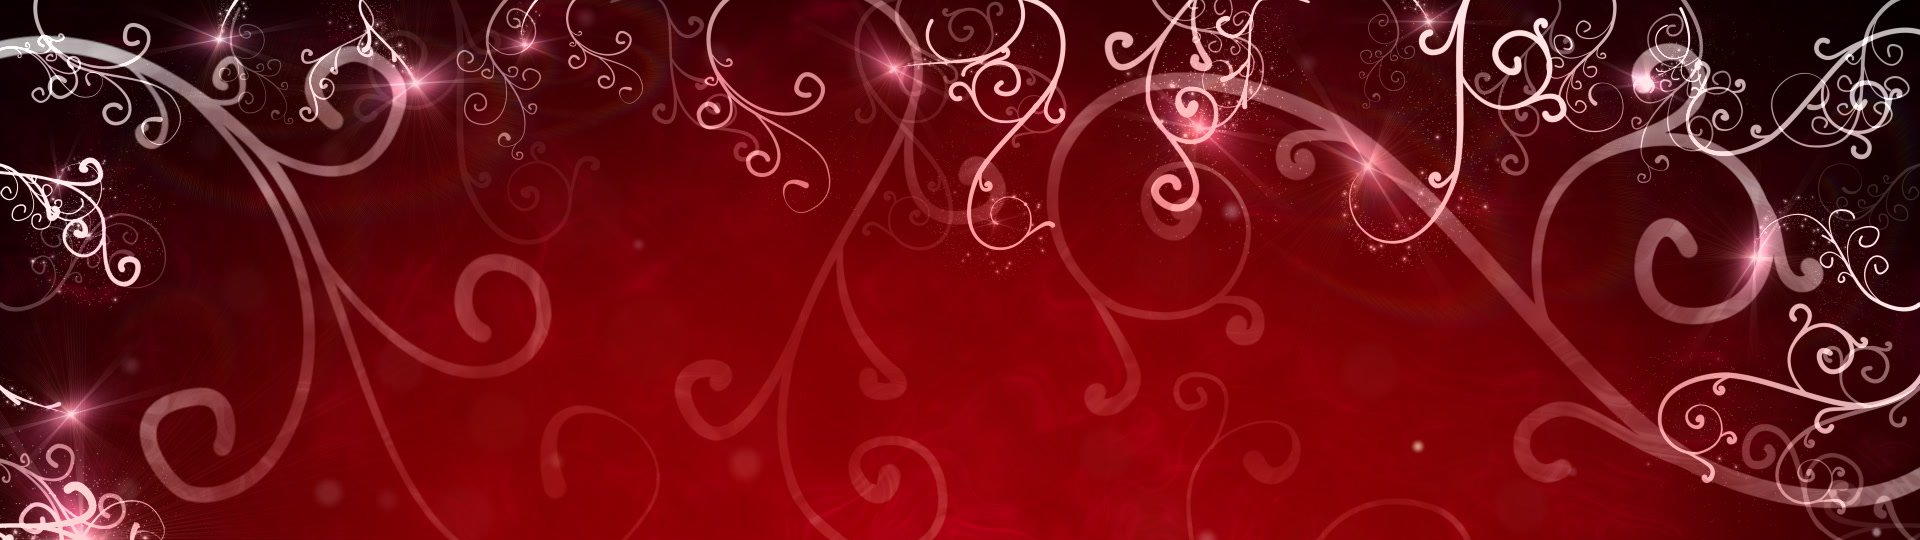 Red flourishes frame loop background | red flourishes frame. Computer generated abstract motion seamless loop background - ID:12817